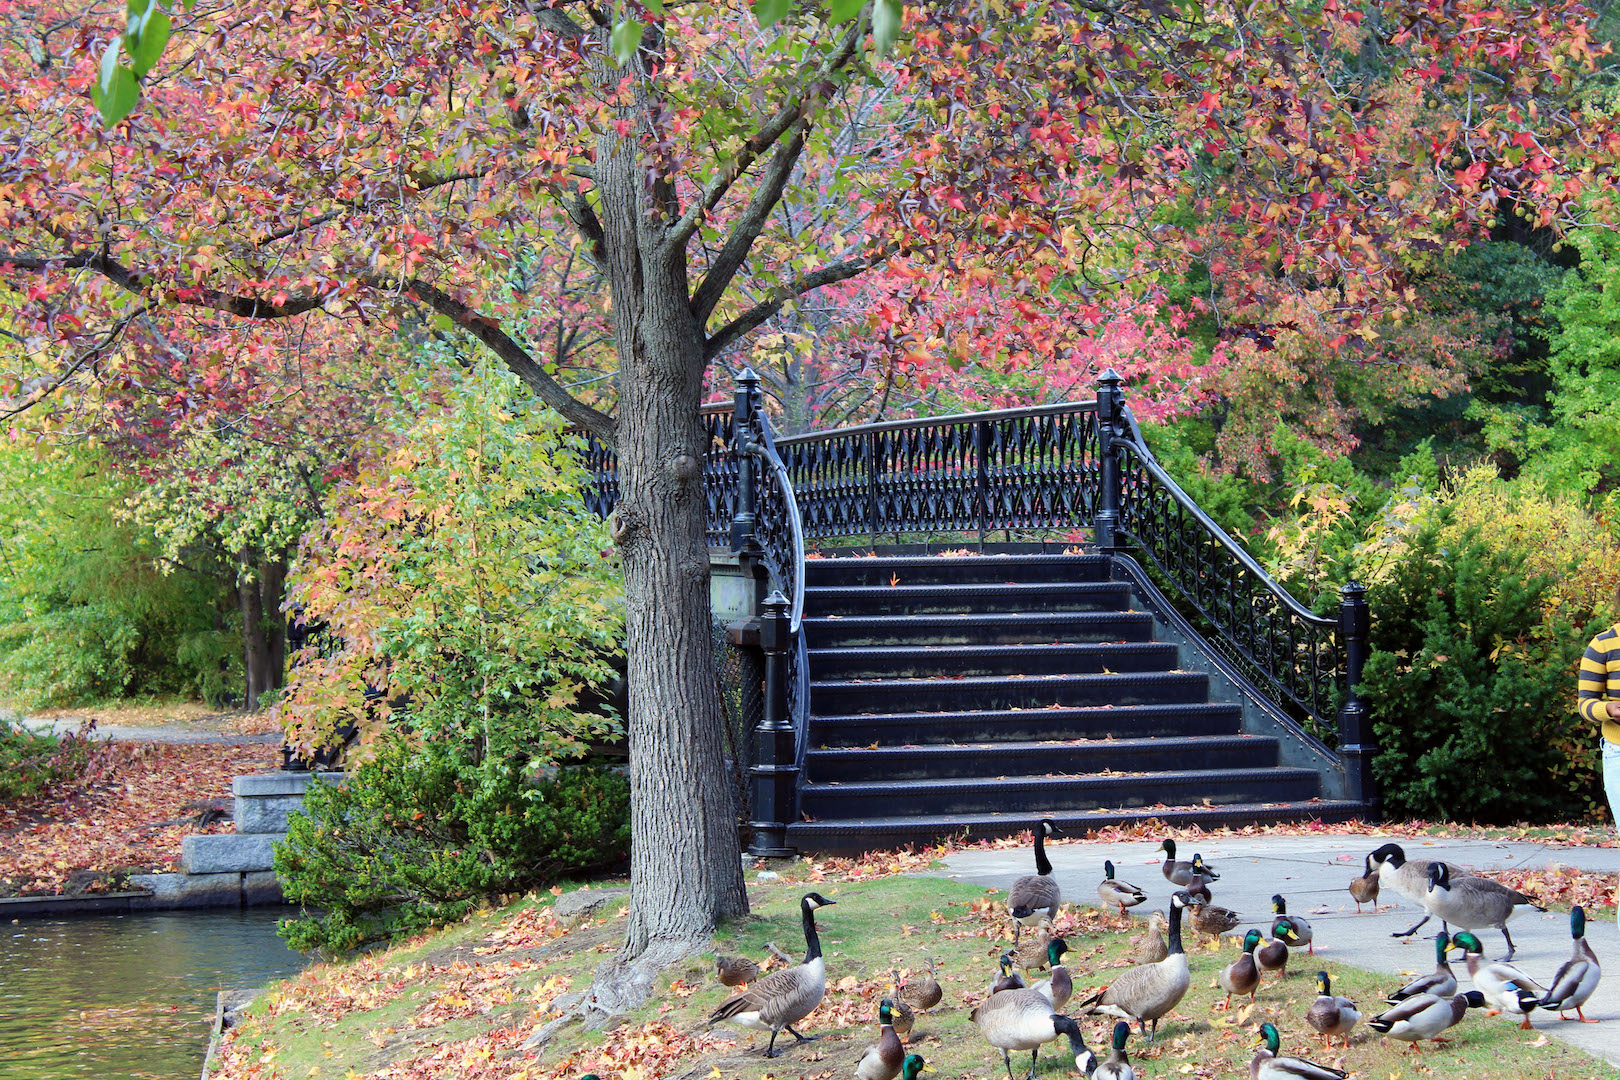 Geese at Roger Williams Park